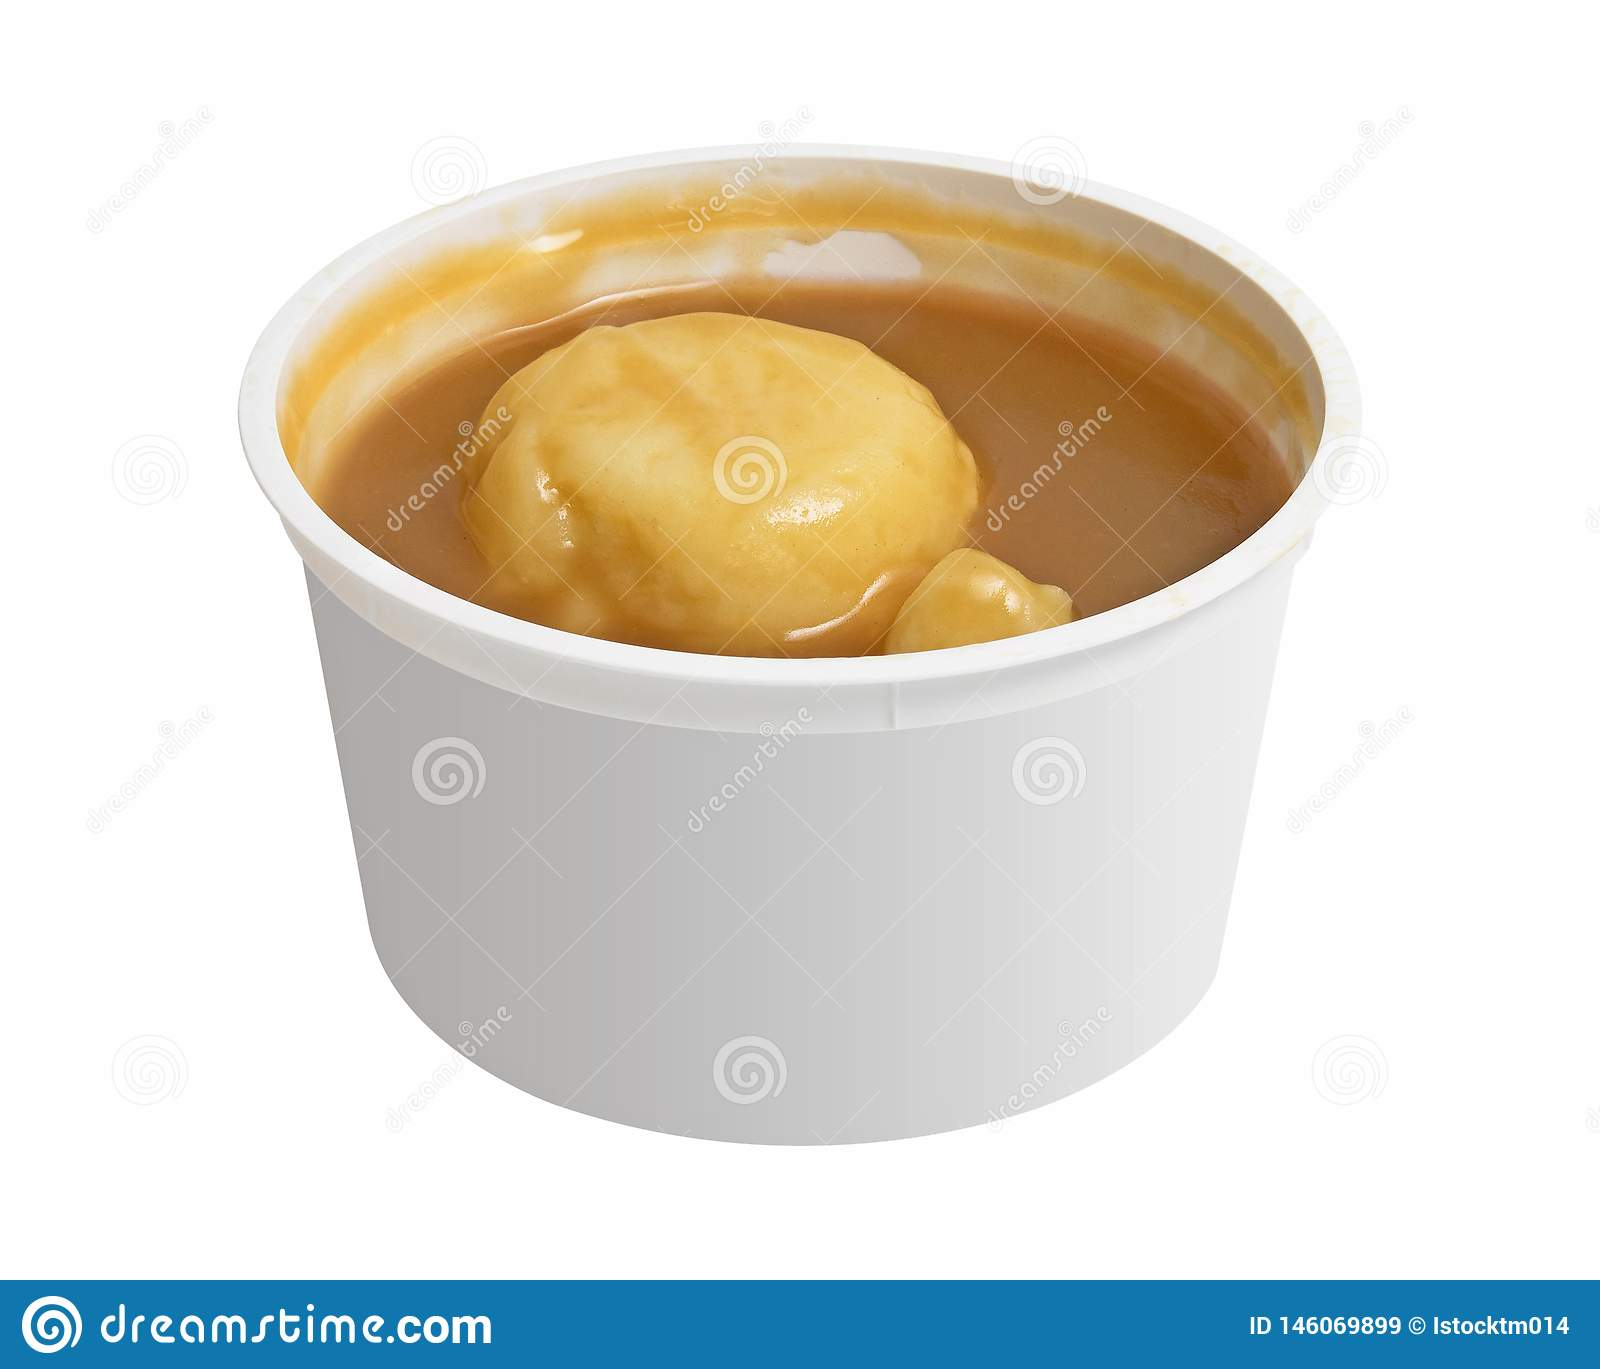 Mashed potatoes in a bowl isolated on white background. Cup of smooth potato puree. Clipping path